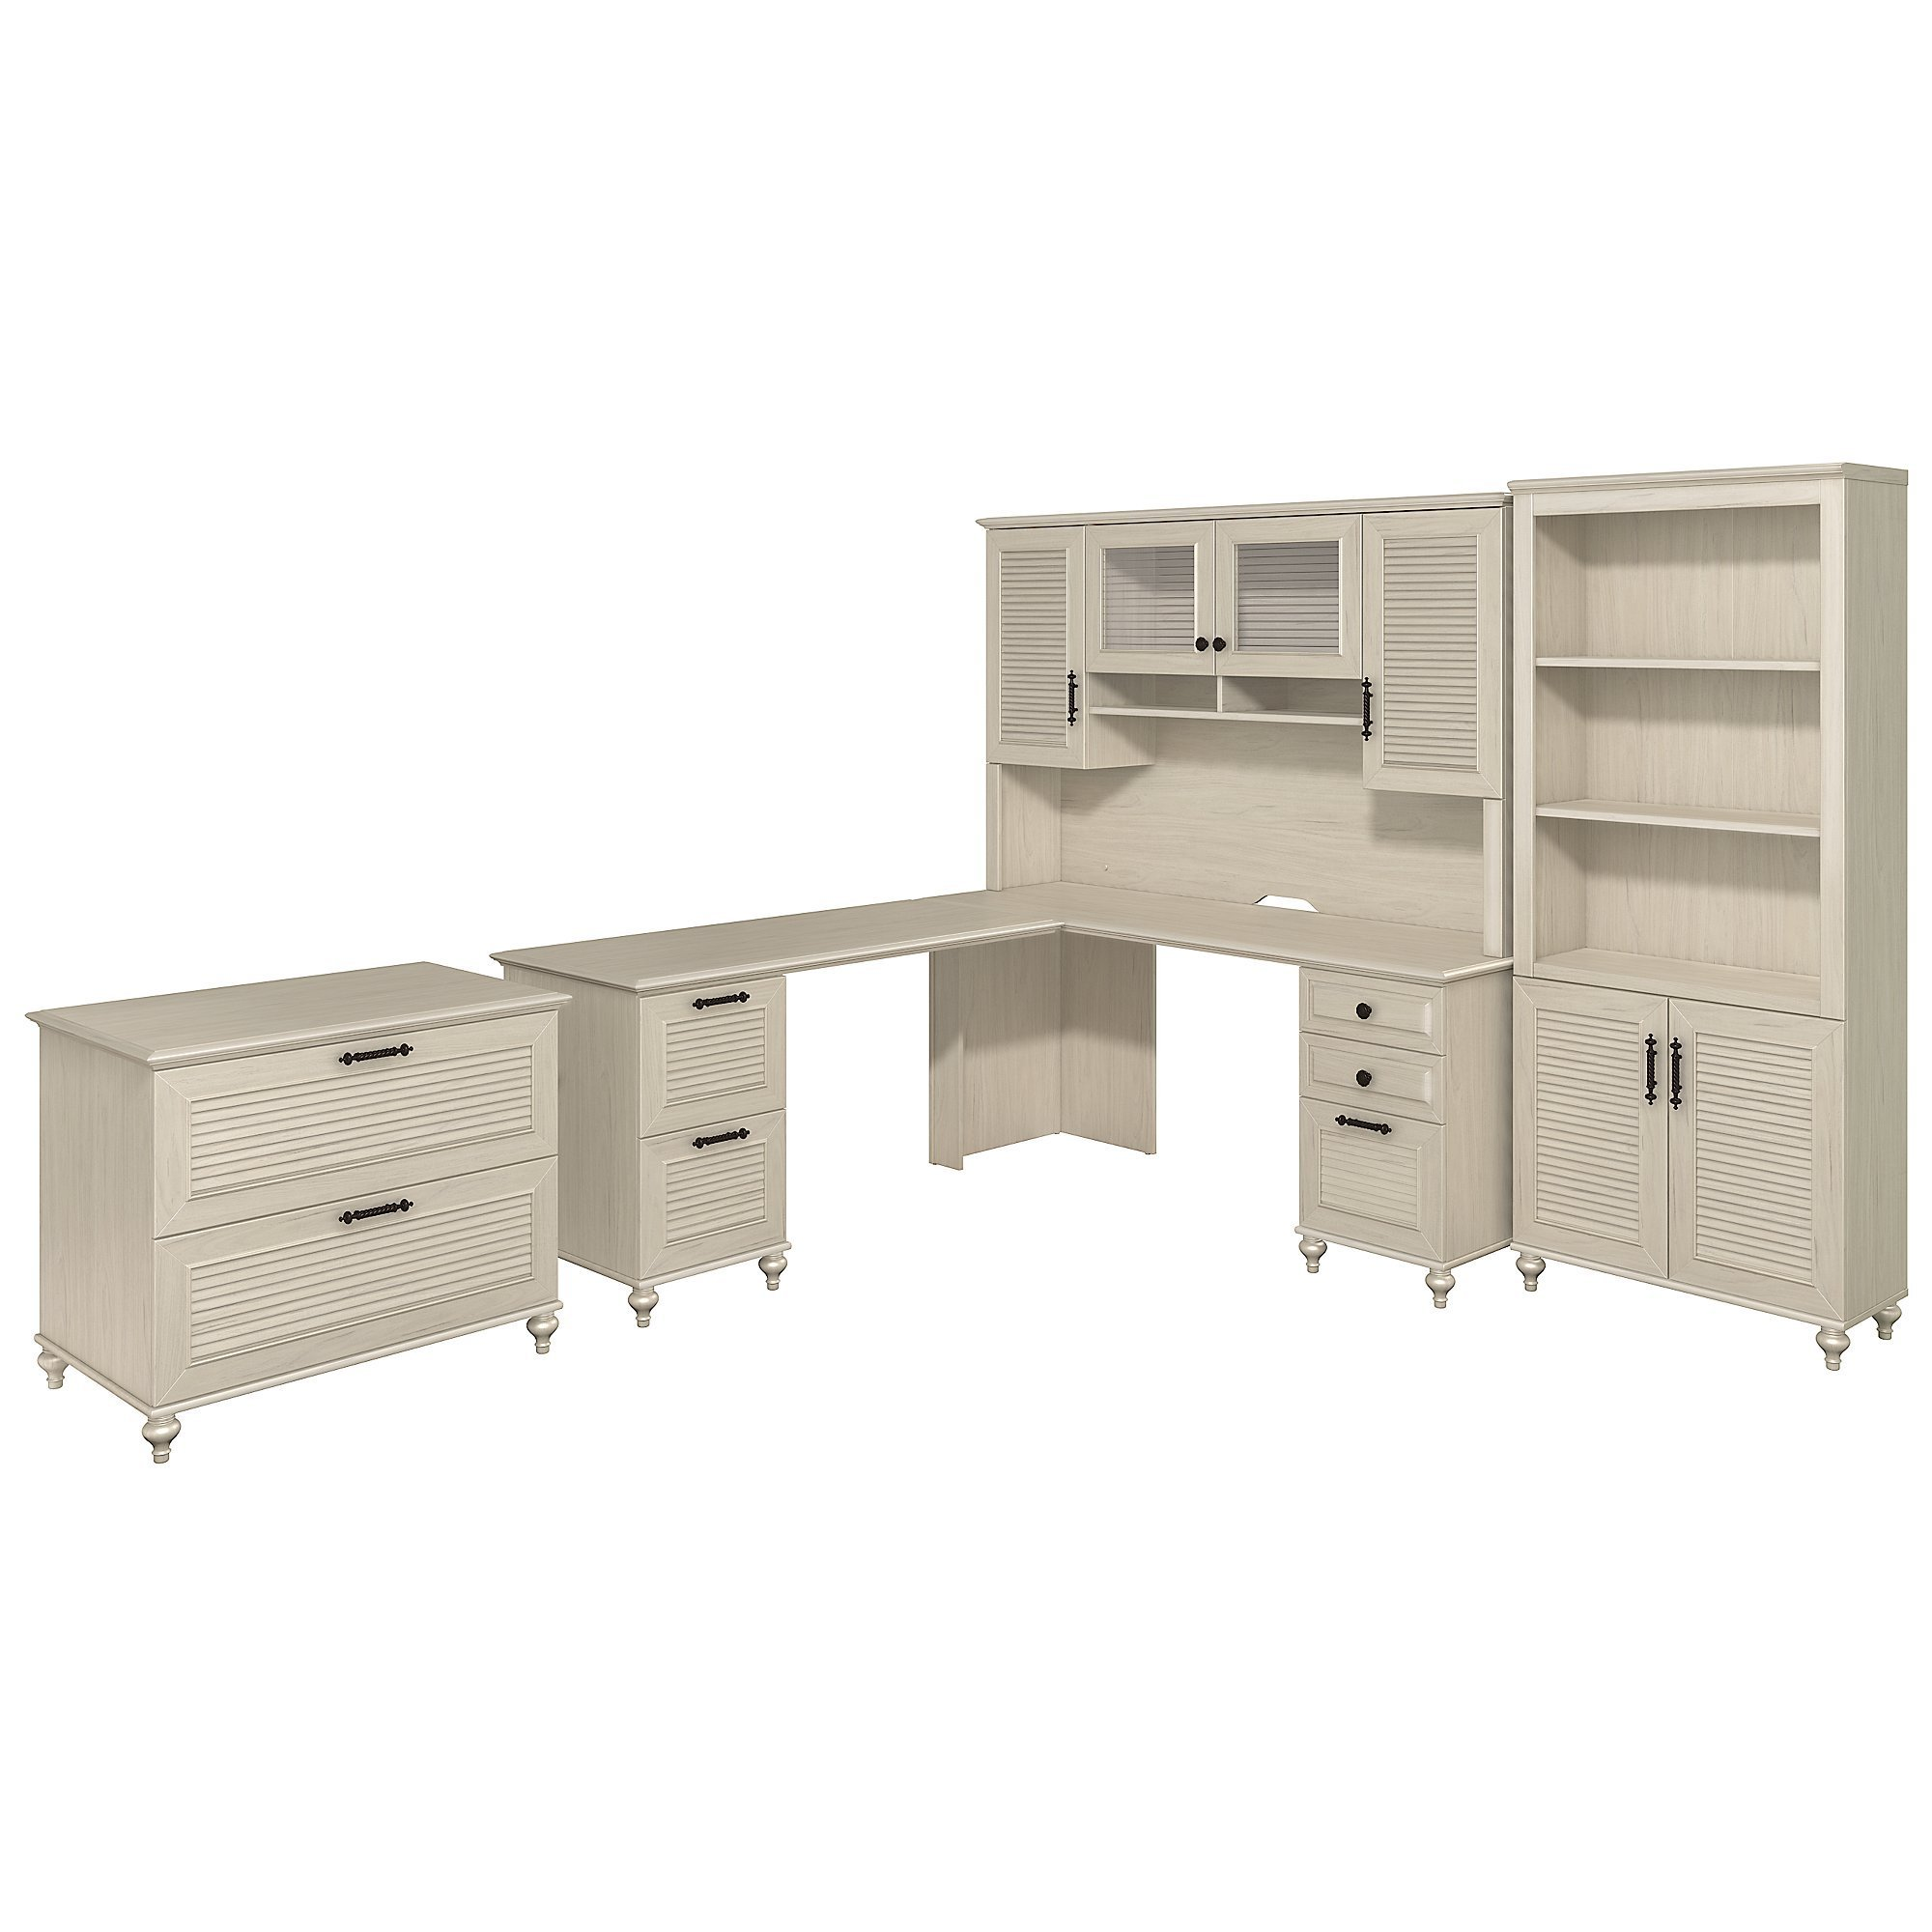 kathy ireland Home by Bush Furniture Volcano Dusk L Shaped Desk with Hutch, Bookcase & Lateral File Cabinet in Driftwood Dreams by kathy ireland Home by Bush Furniture